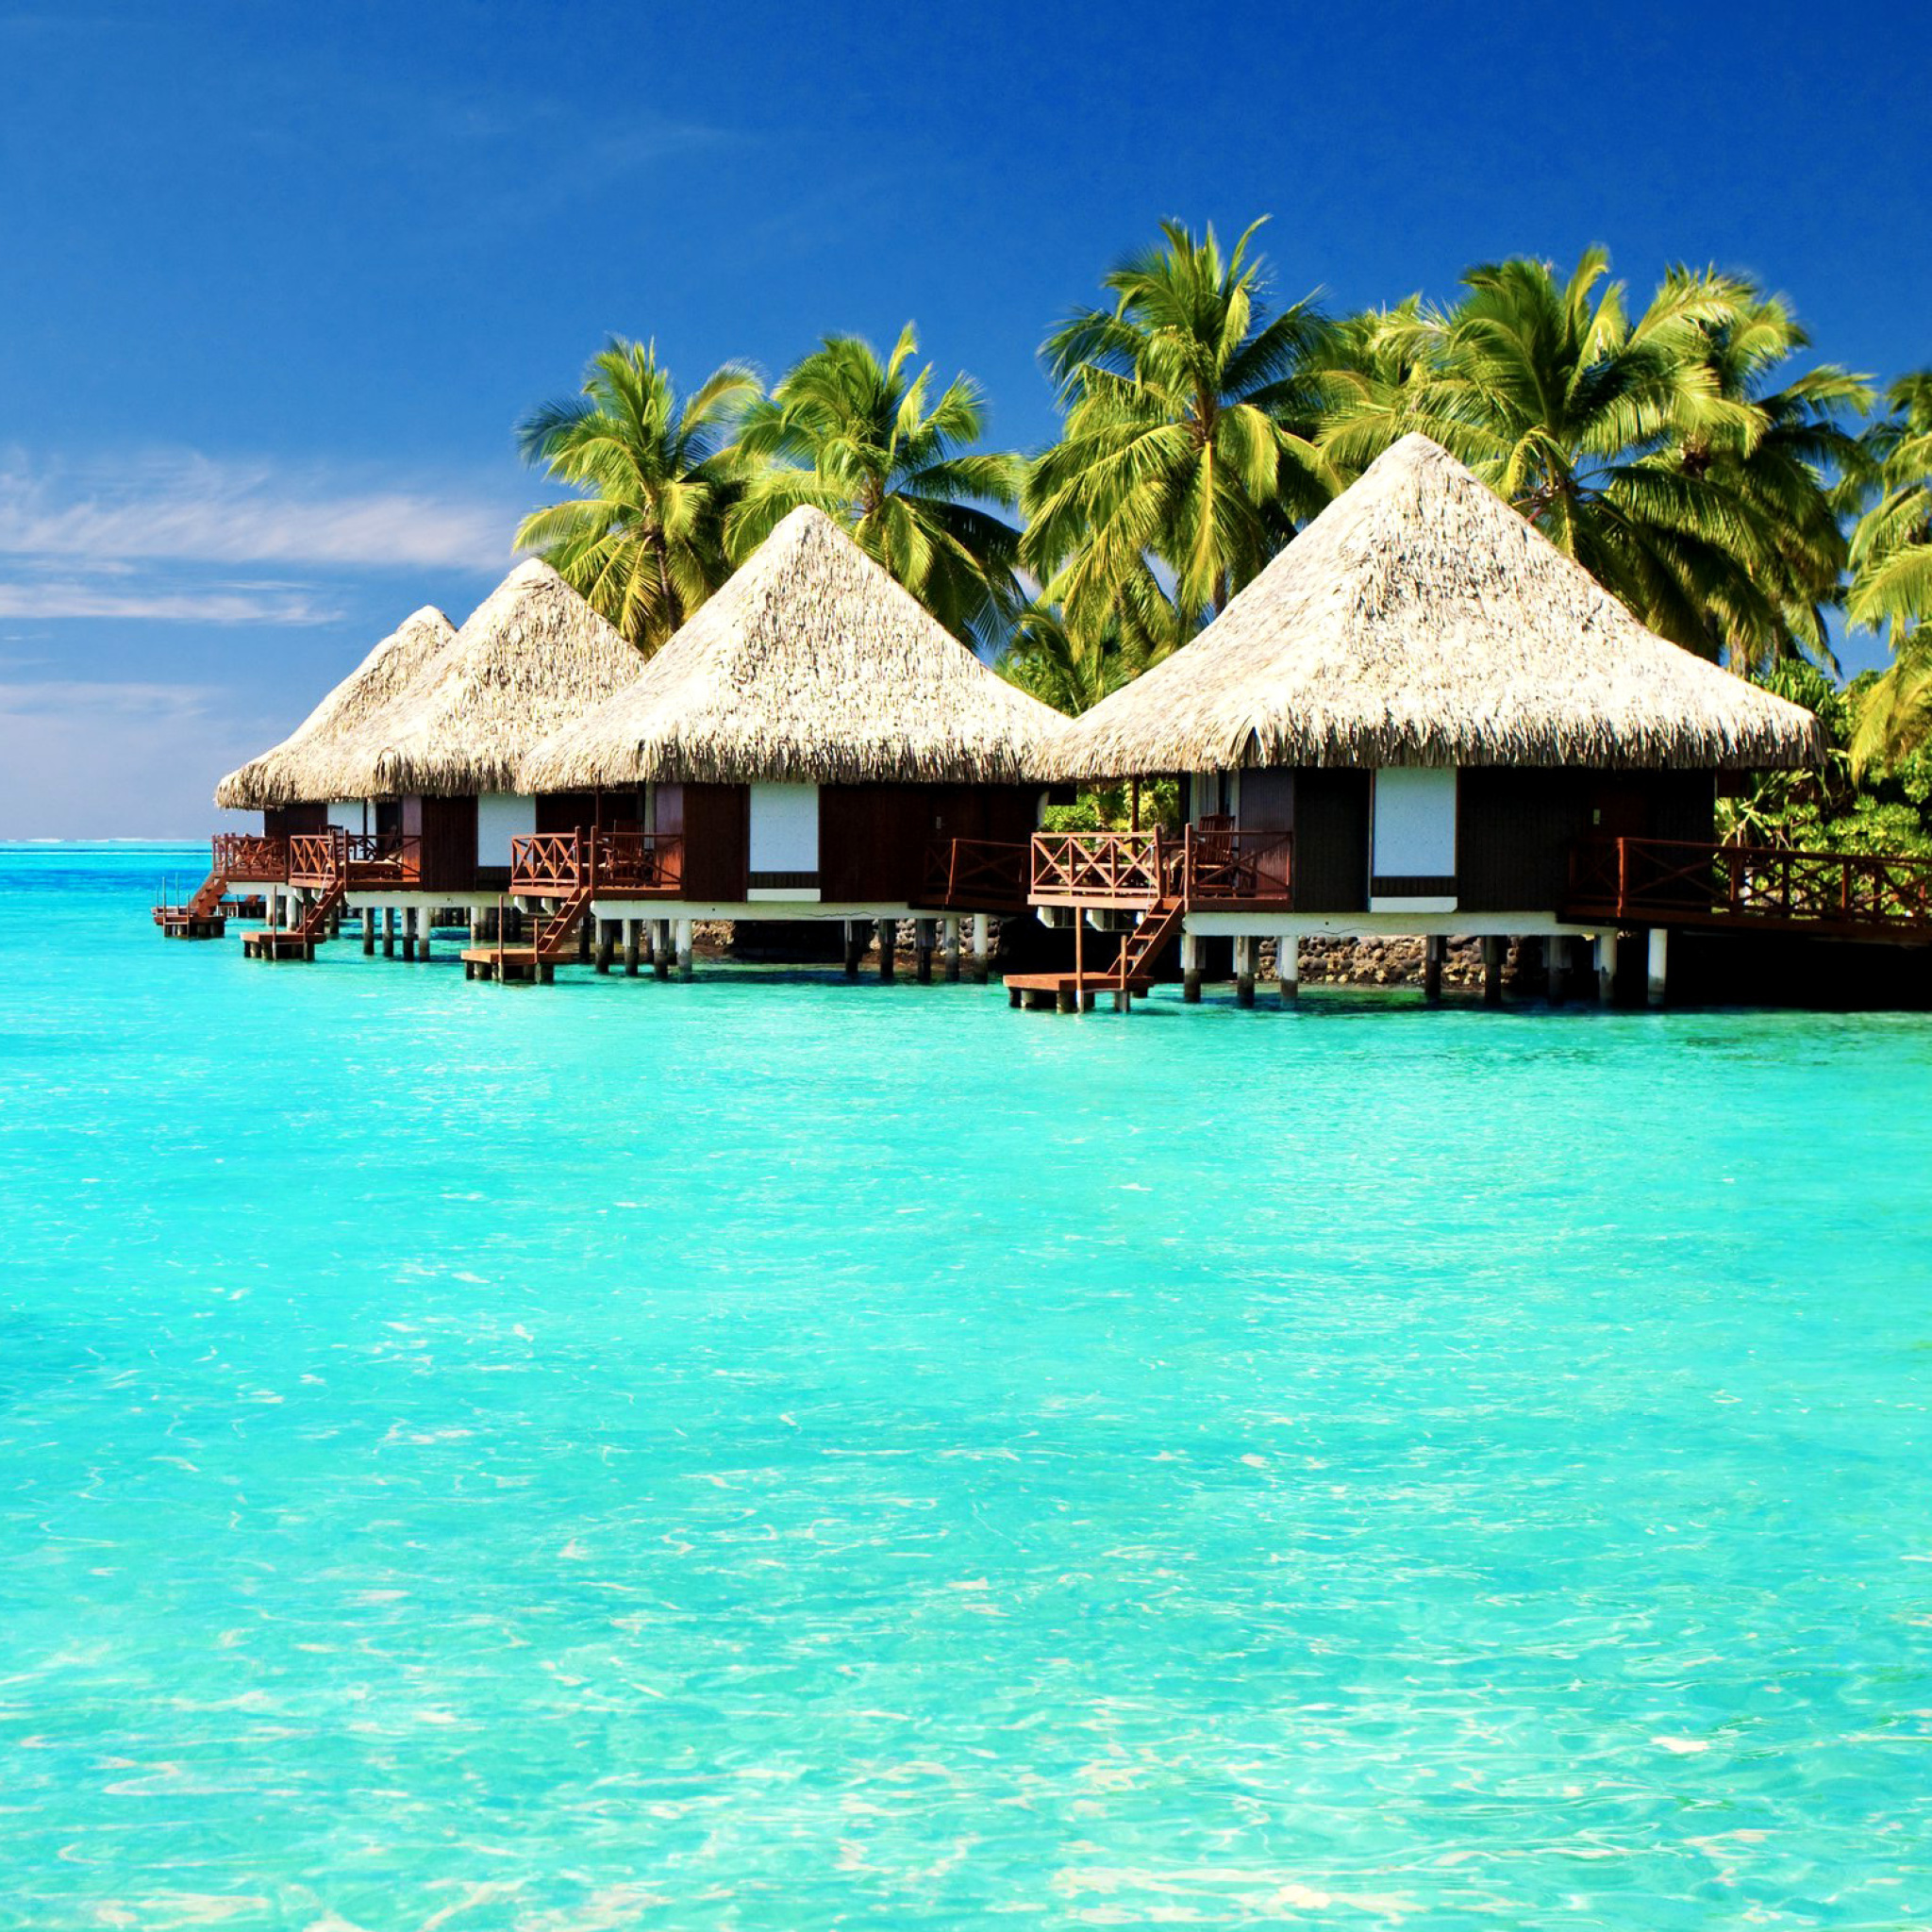 Maldives Islands best Destination for Honeymoon wallpaper 2048x2048